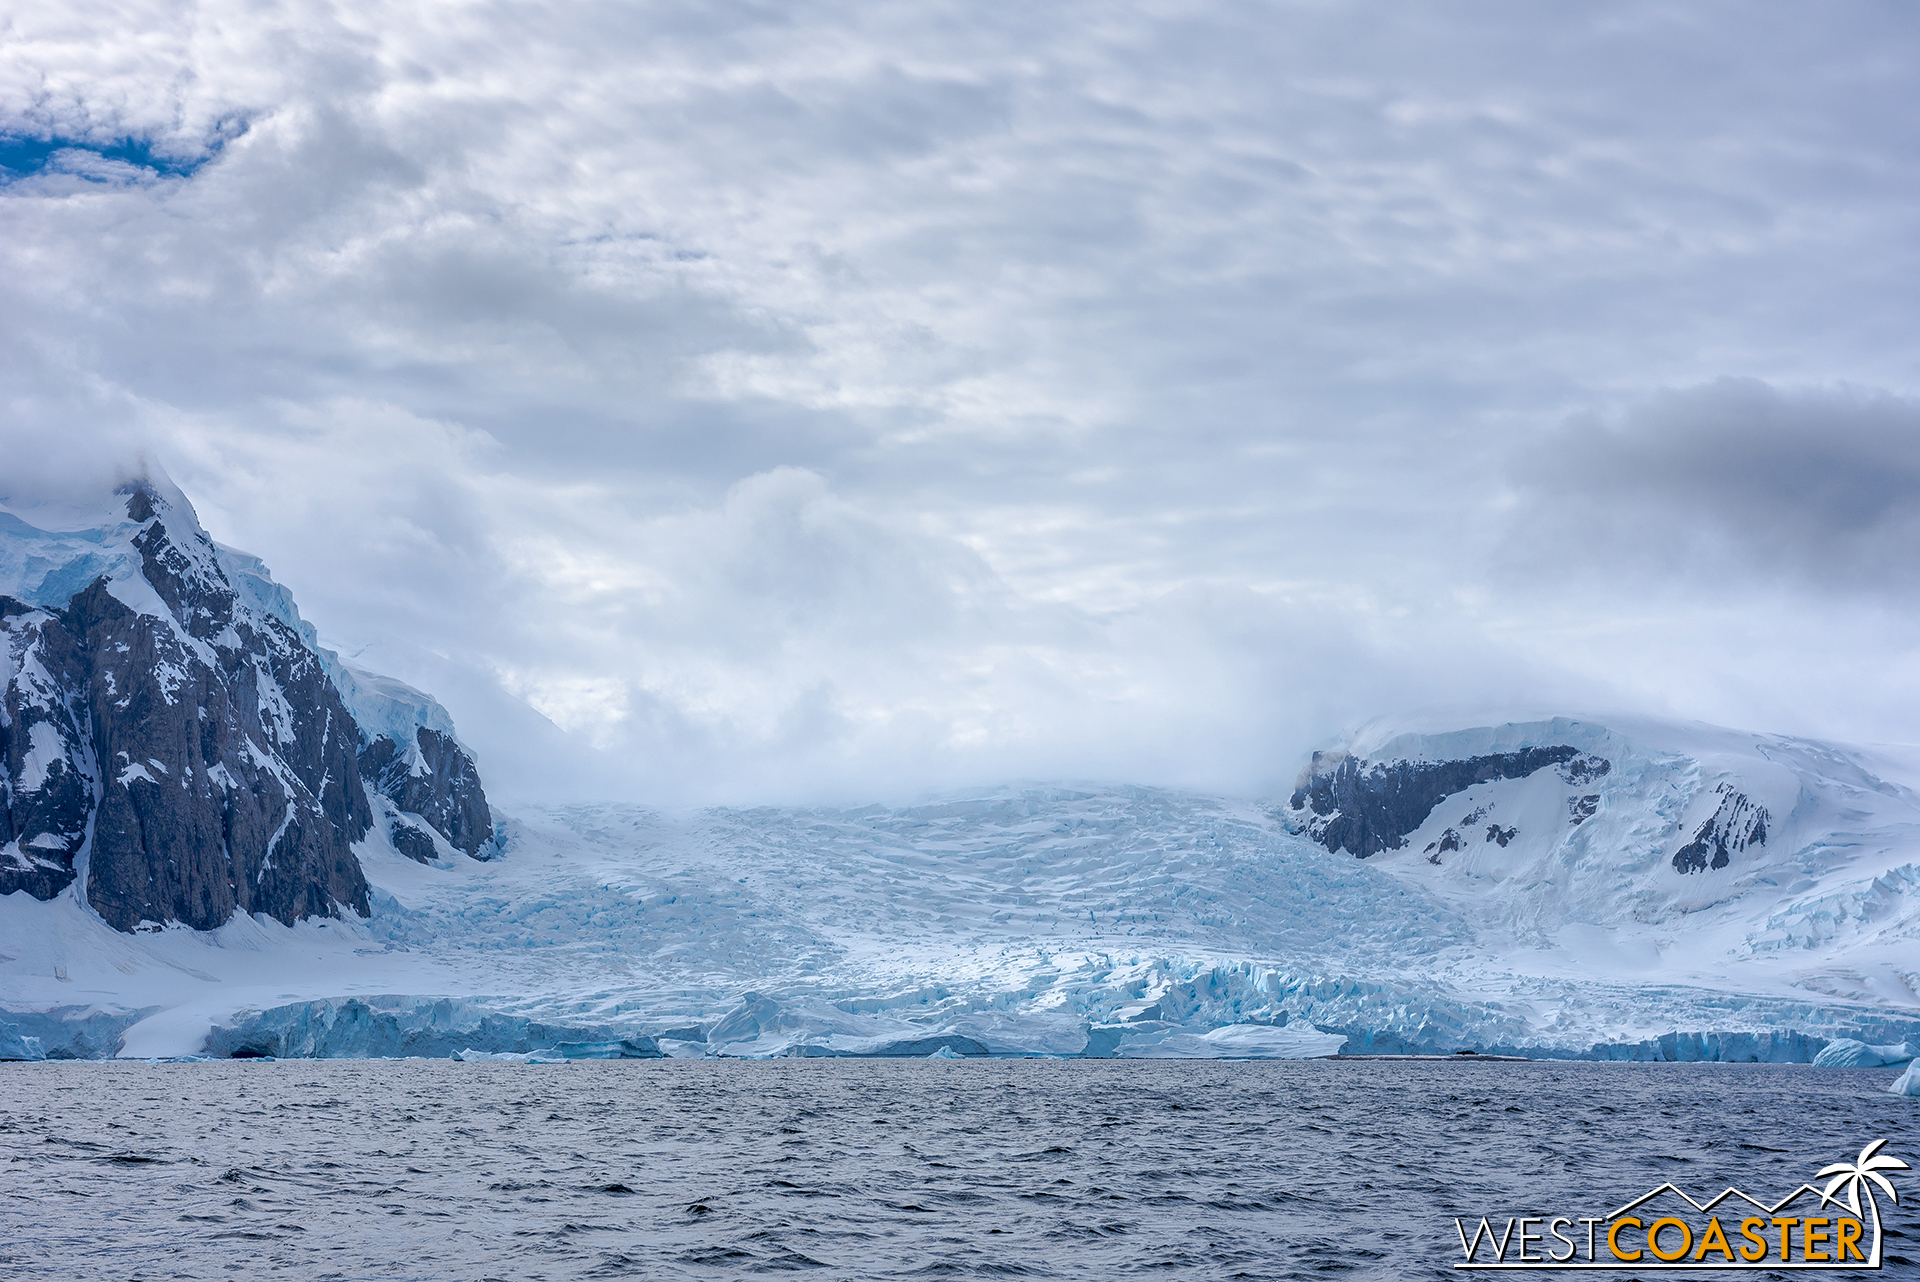 A glacier folds its ice into the water.